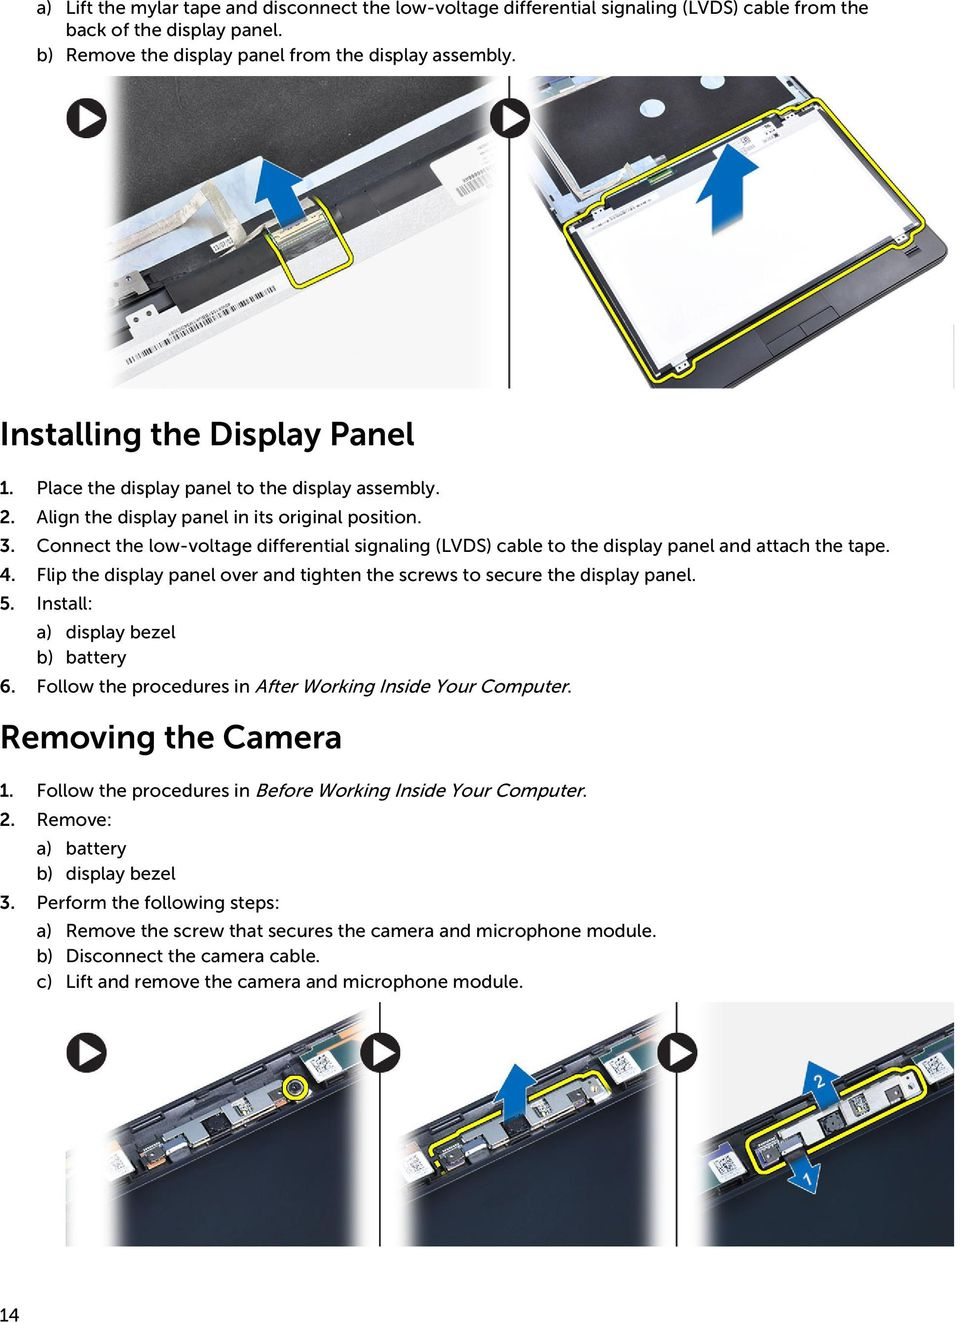 Connect the low-voltage differential signaling (LVDS) cable to the display panel and attach the tape. 4. Flip the display panel over and tighten the screws to secure the display panel. 5.